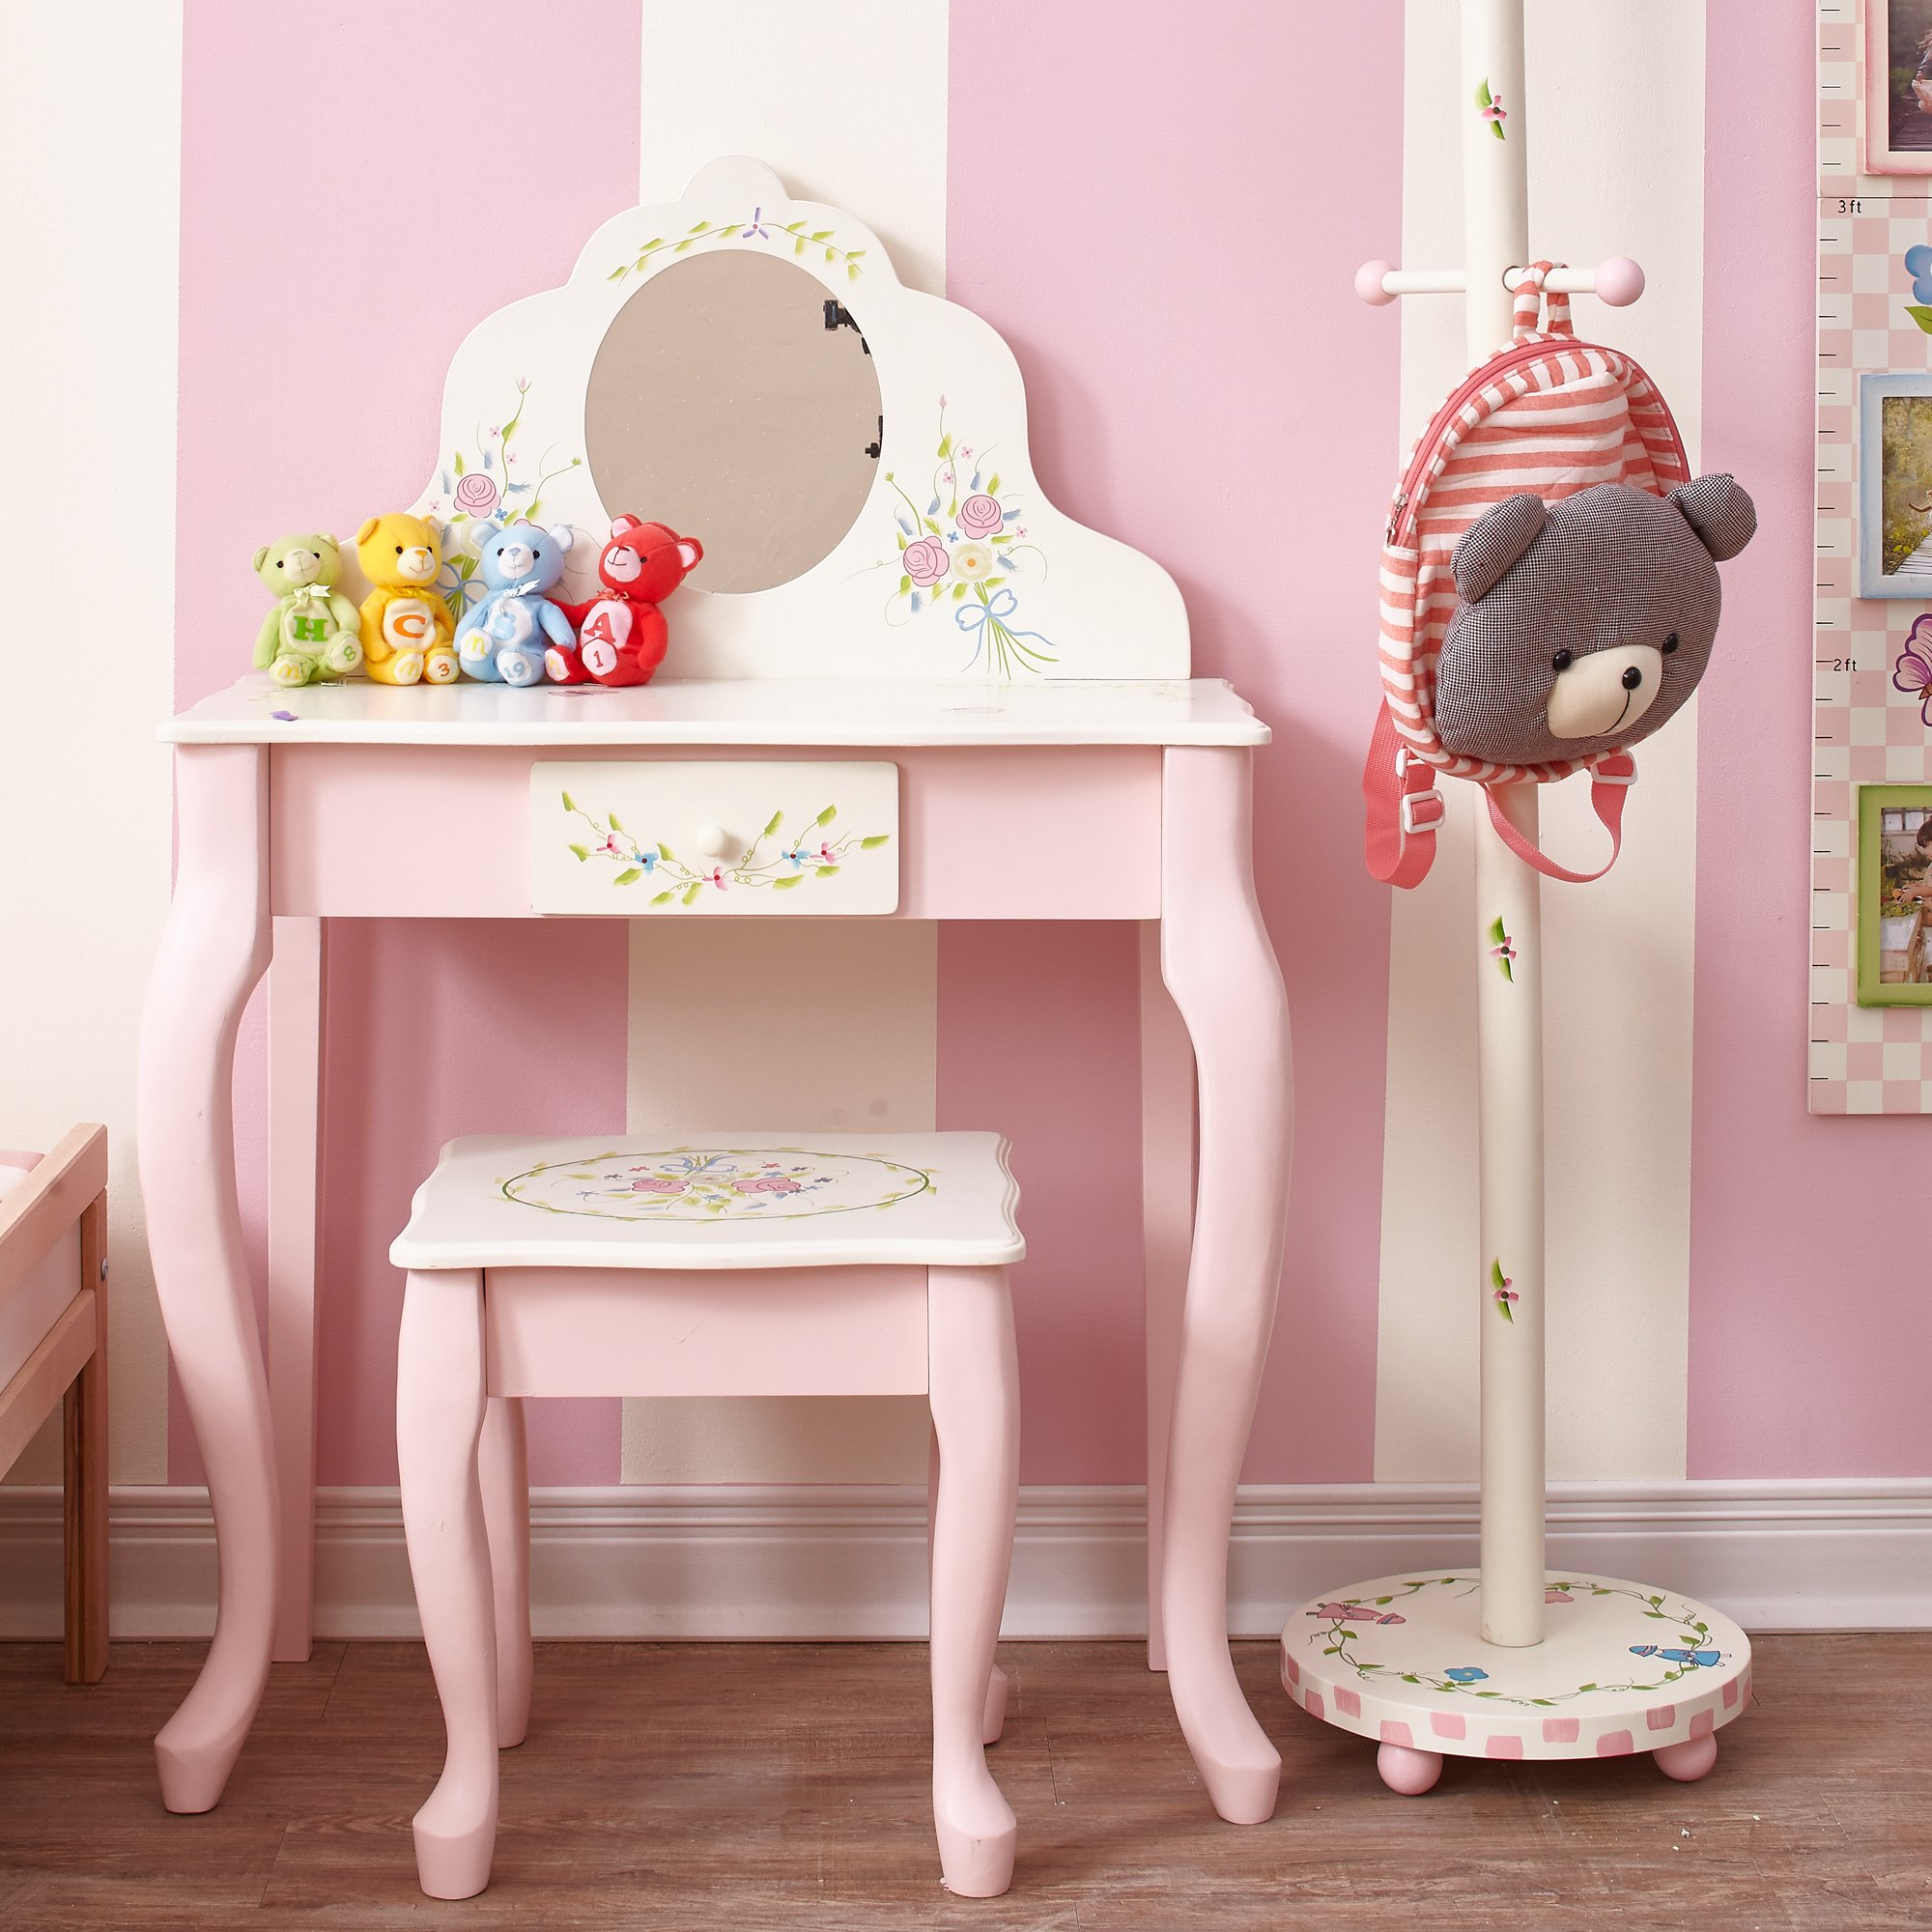 Fantasy Fields - Bouquet Thematic Kids Classic Vanity Table and Stool Set with Mirror   Imagination Inspiring Hand Crafted & Hand Painted Details   Non-Toxic, Lead Free Water-based Paint by Teamson Design Corp (Image #2)